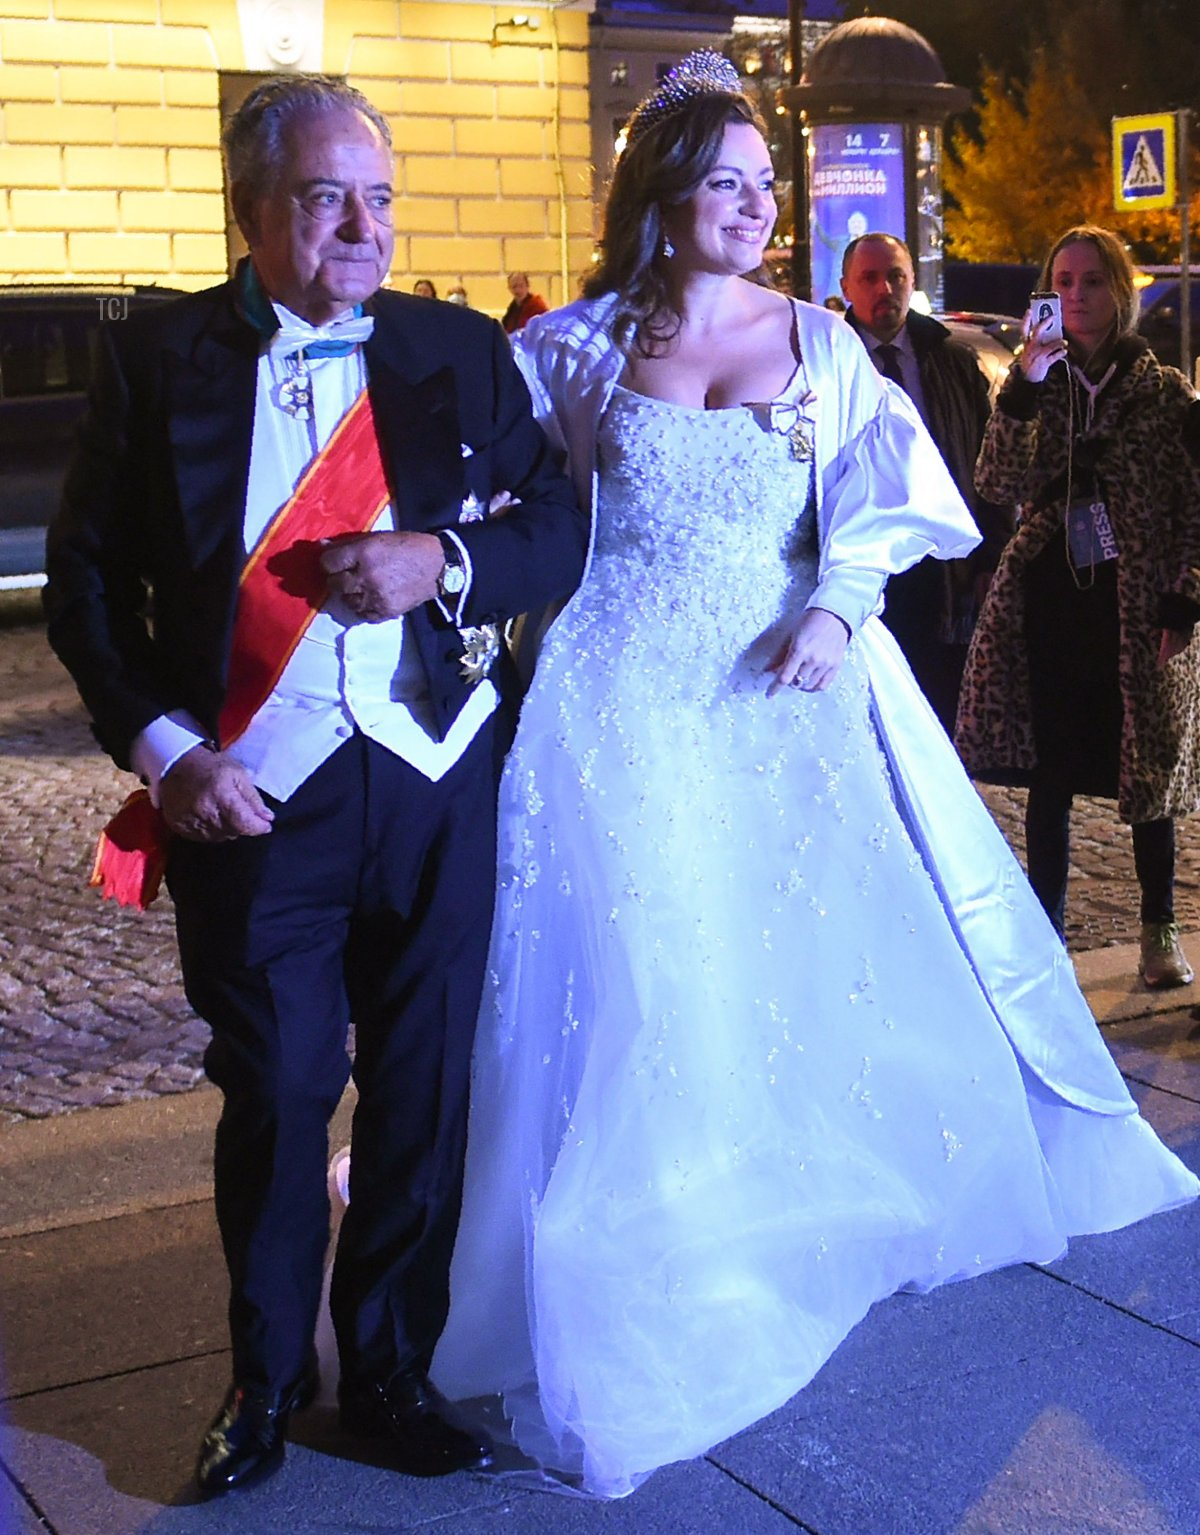 Victoria Romanovna Bettarini accompanied by her father, Roberto Bettarini, arrives to attend a dinner after her wedding with Grand Duke George Mikhailovich Romanov in Saint Petersburg, on October 1, 2021